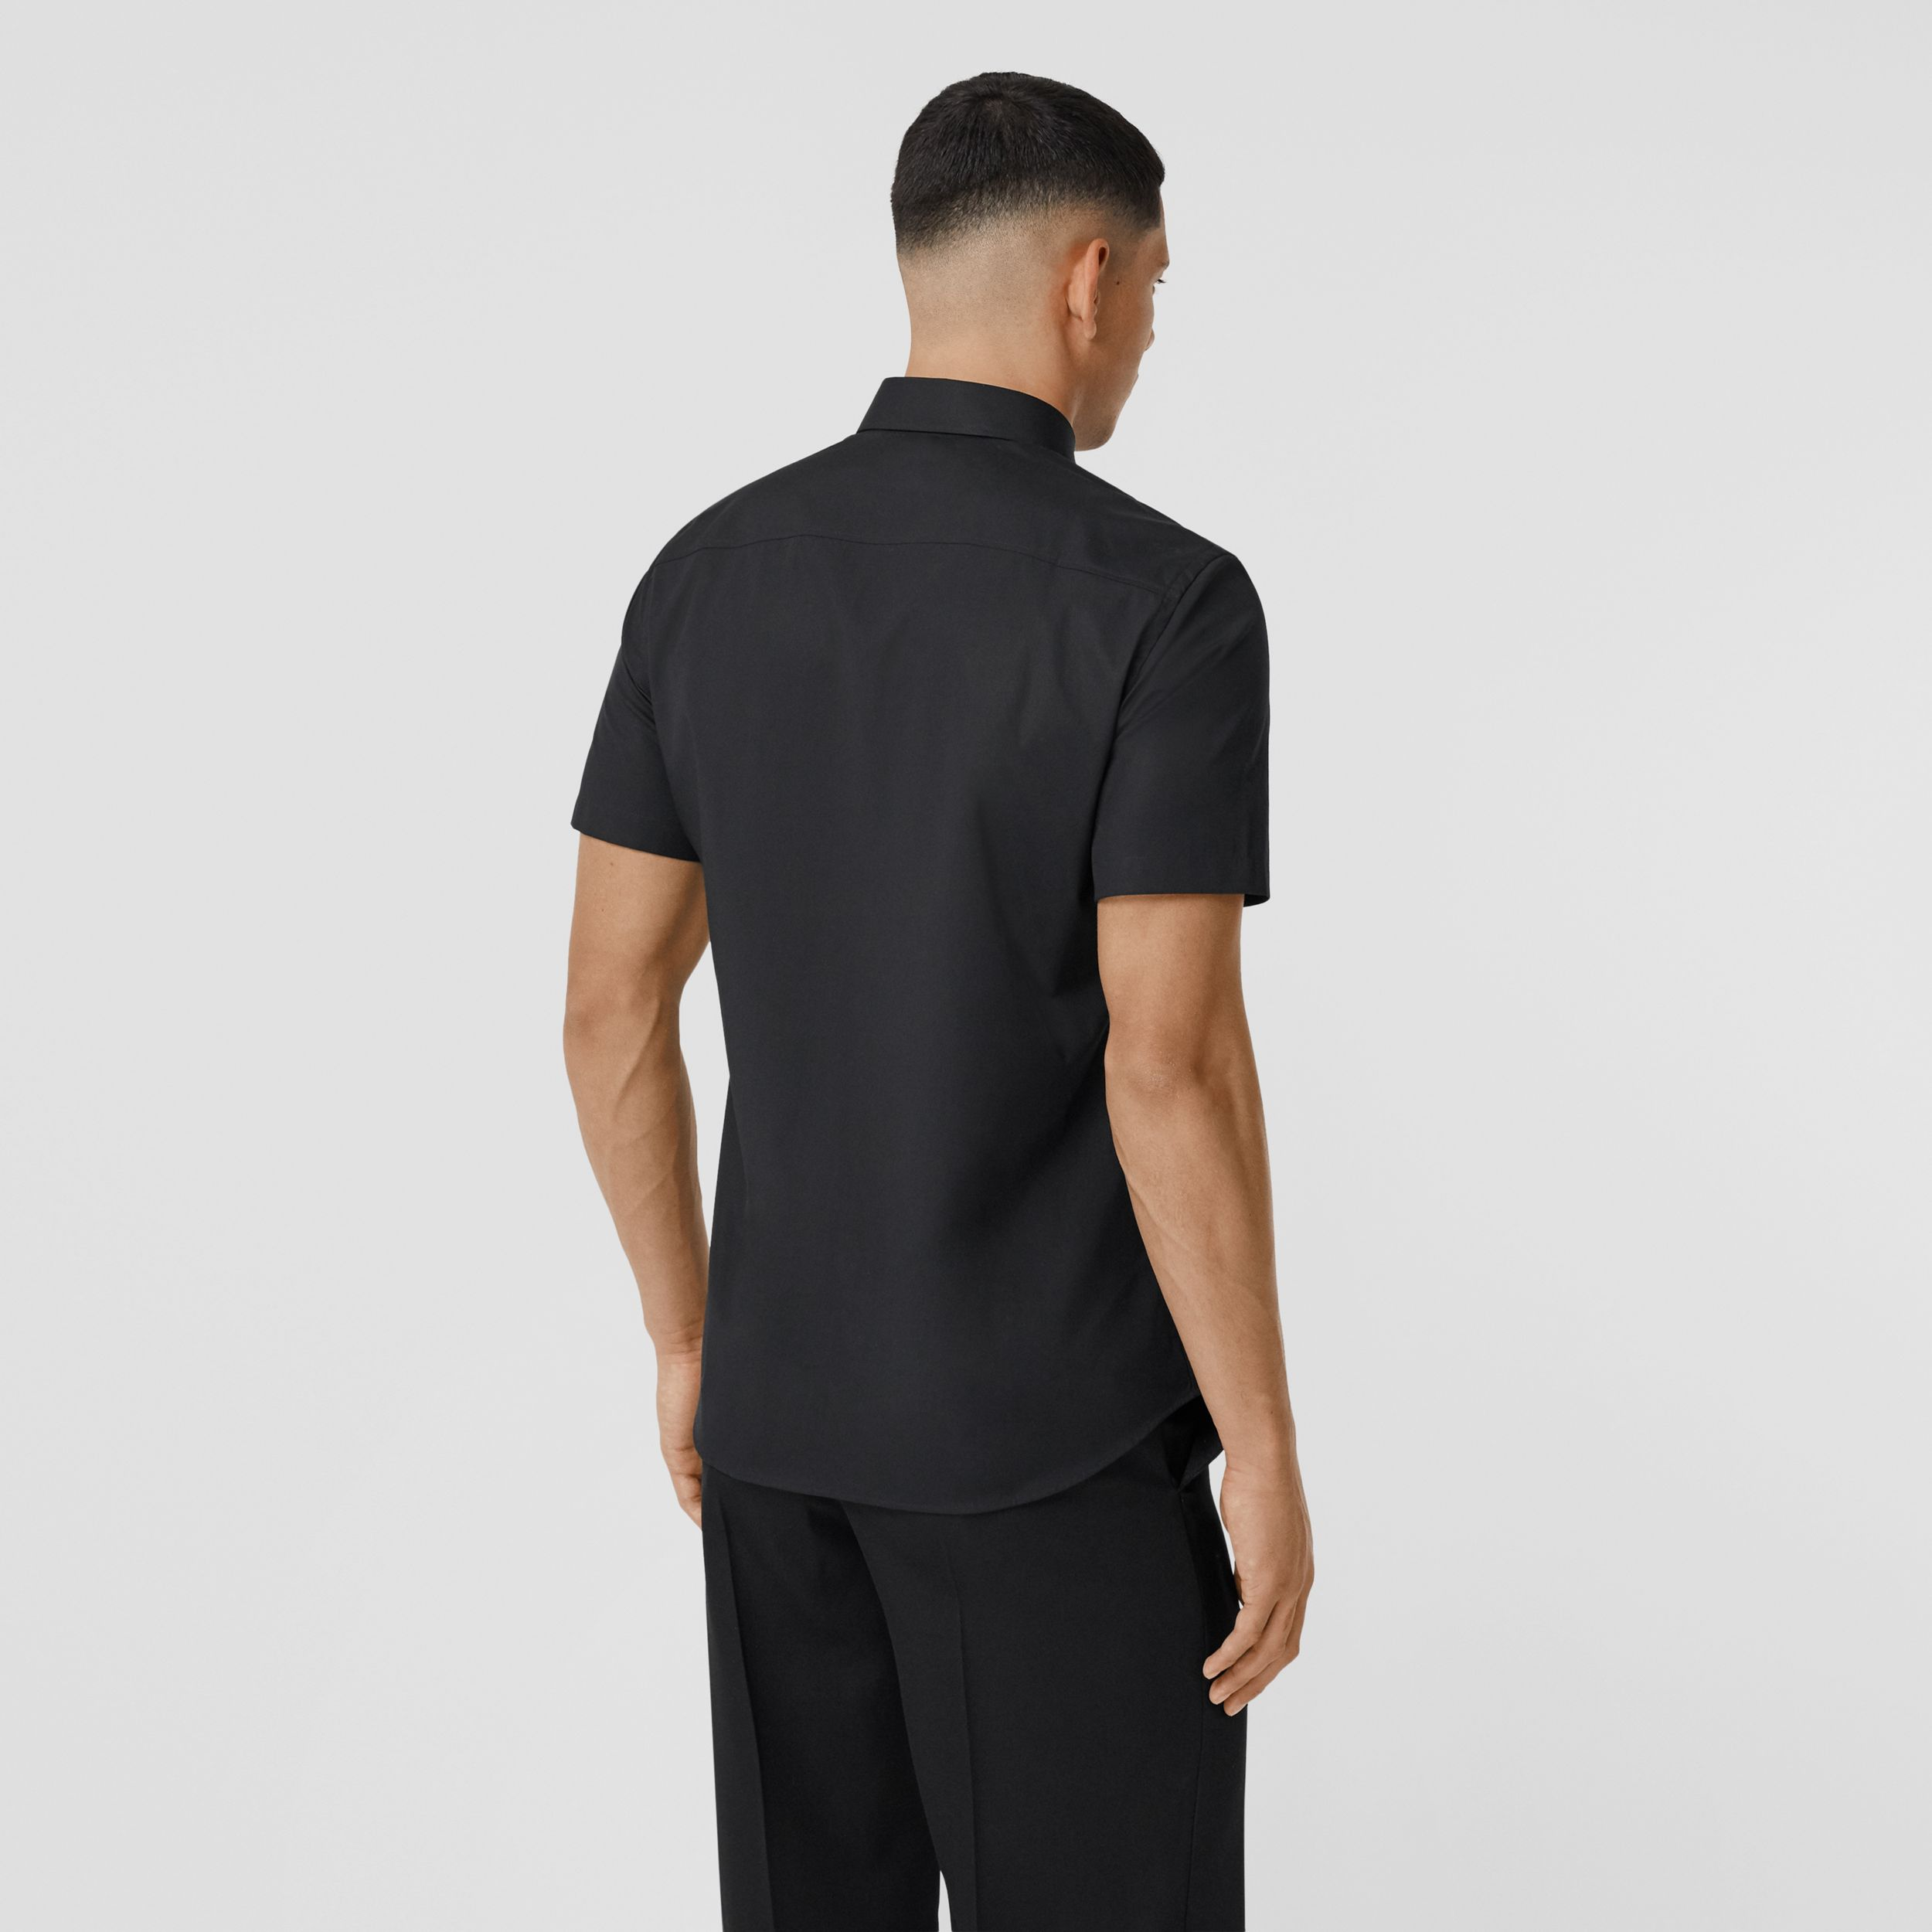 Short-sleeve Monogram Motif Stretch Cotton Shirt in Black - Men | Burberry Hong Kong S.A.R. - 3